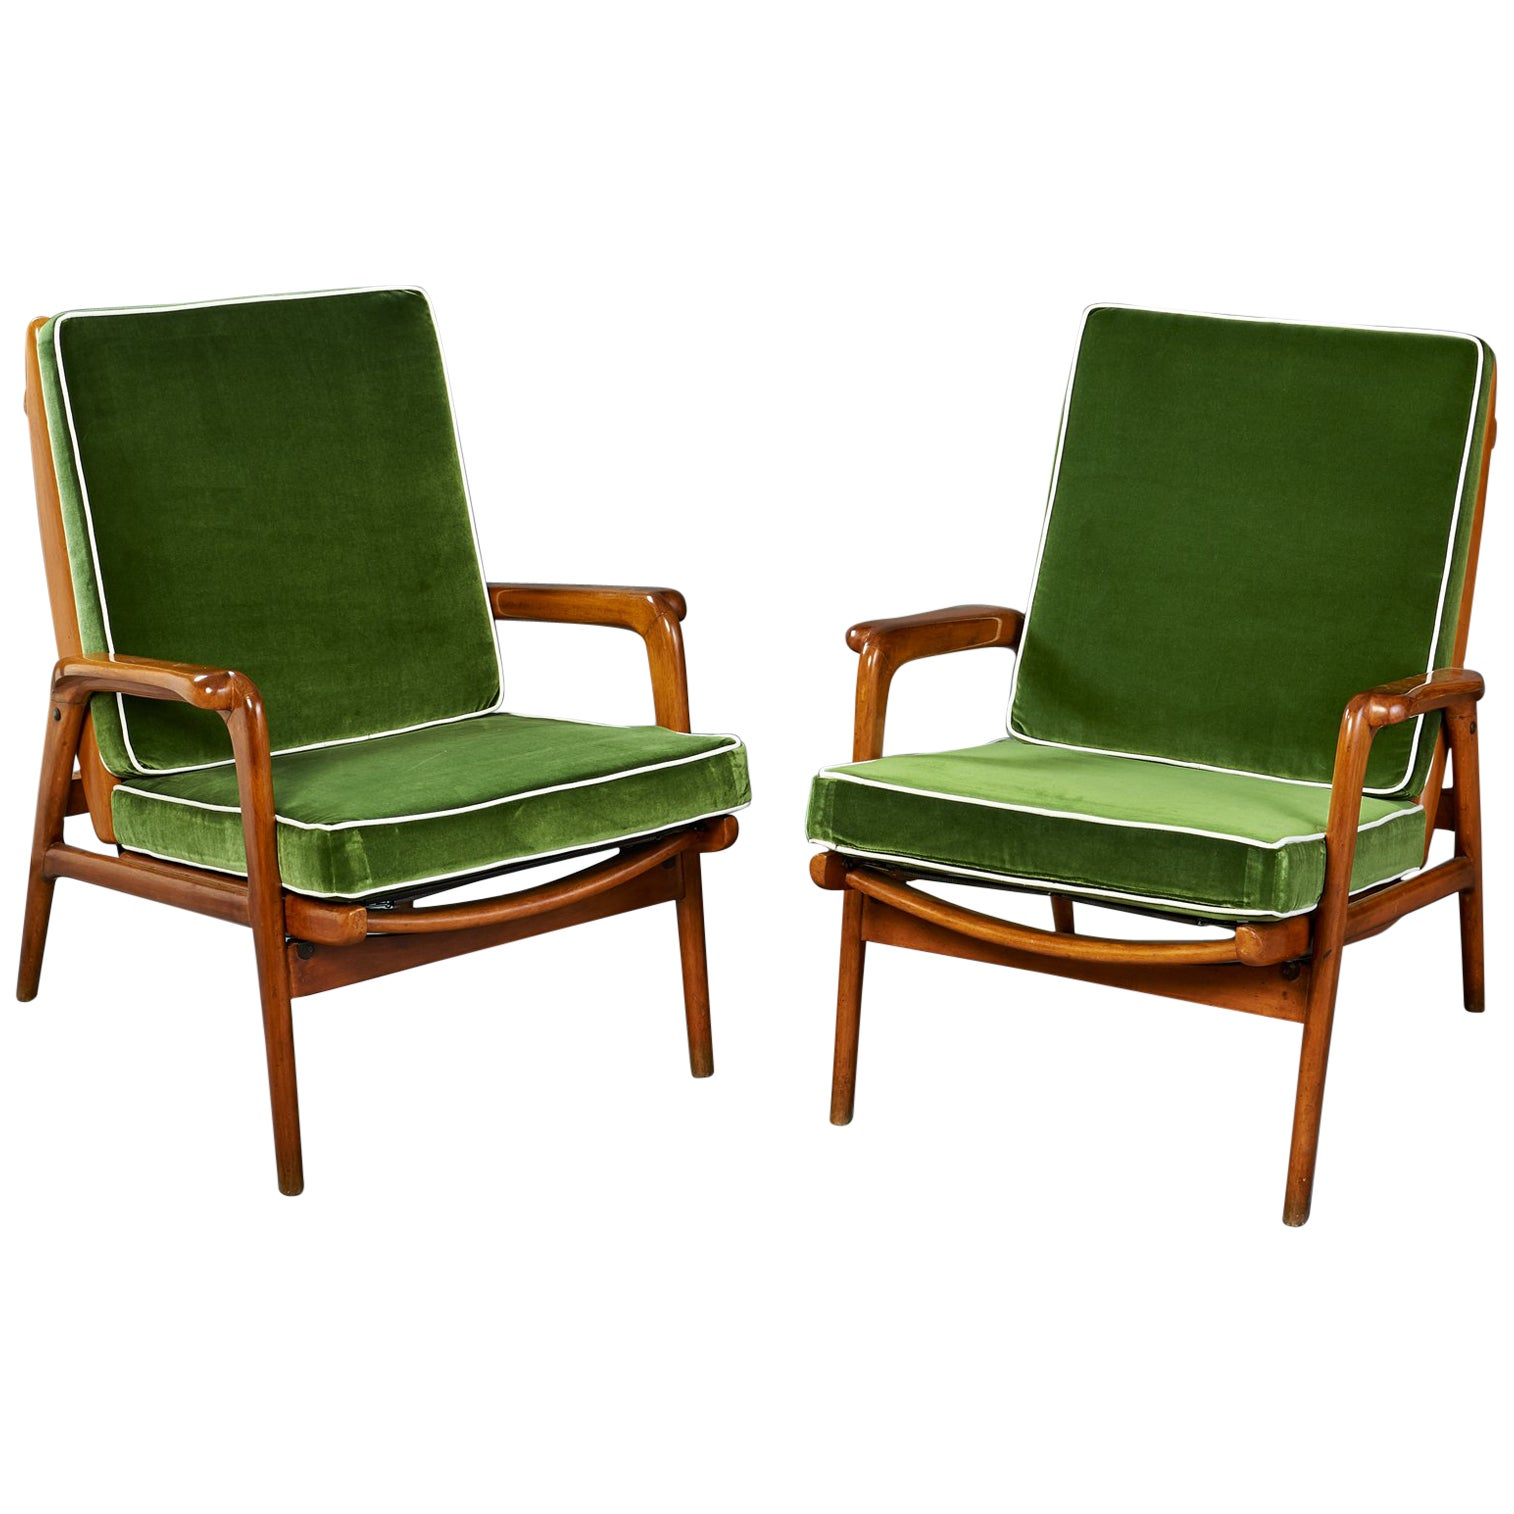 Pair of Reclining Wood Armchairs, Italy, 1950s